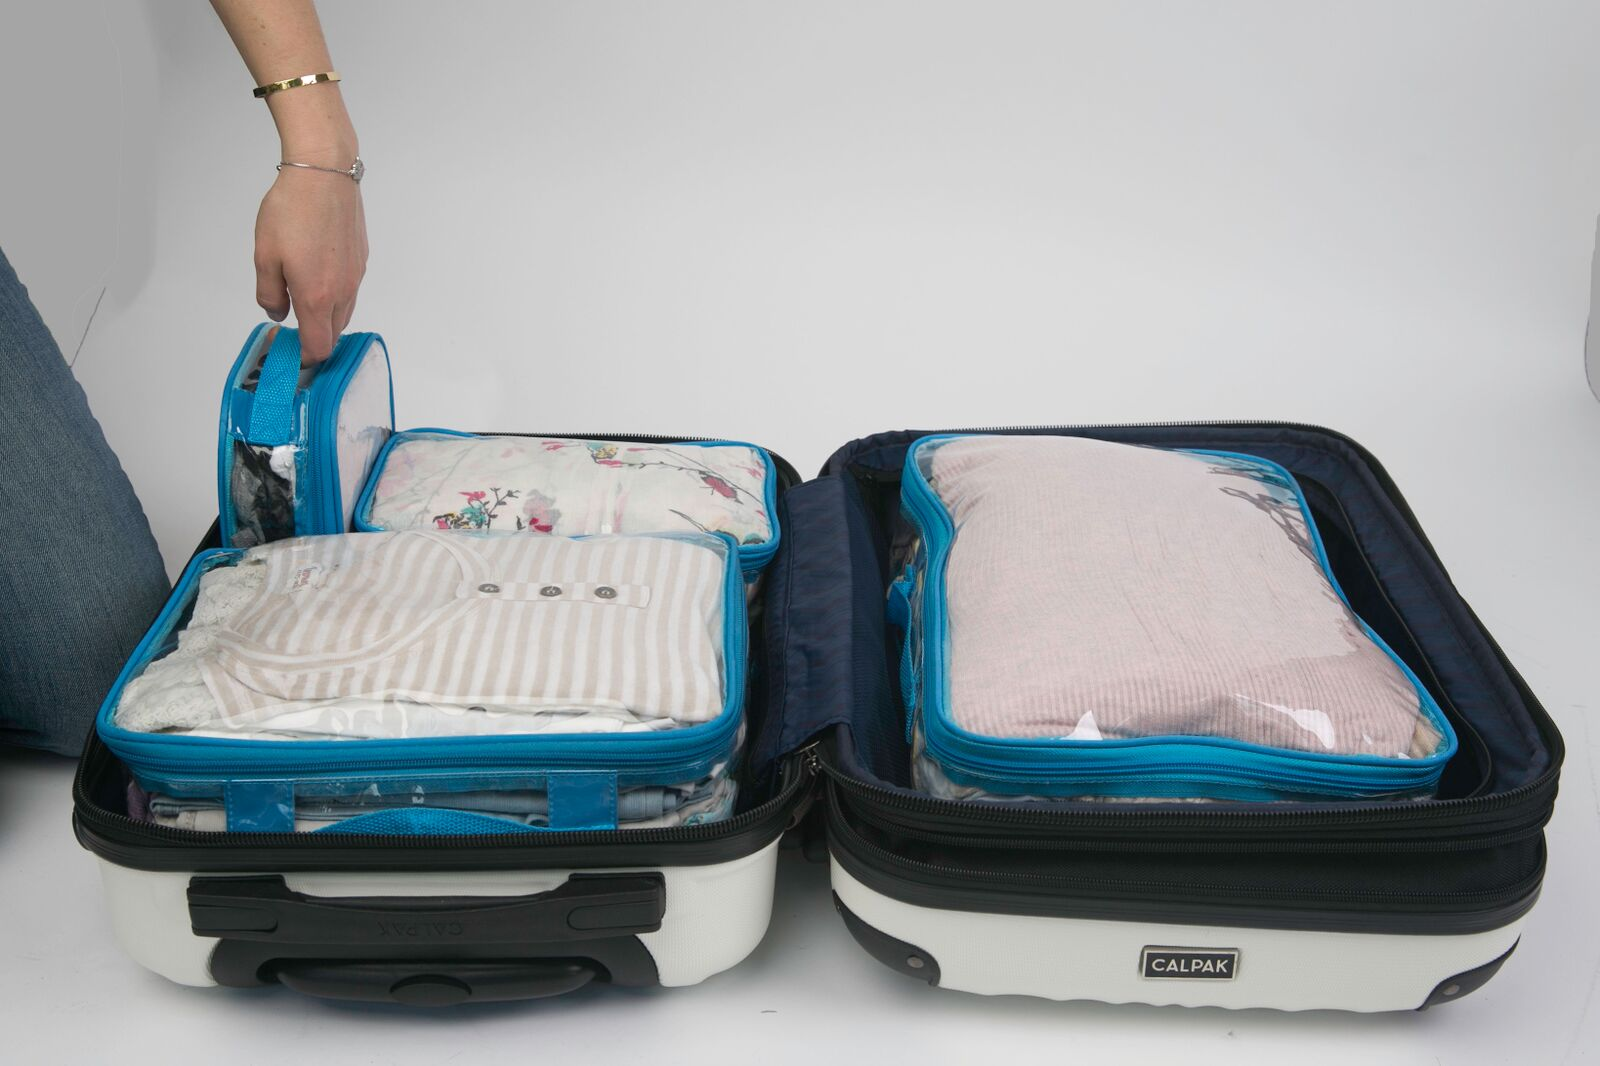 How to use packing cubes for carry-on luggage